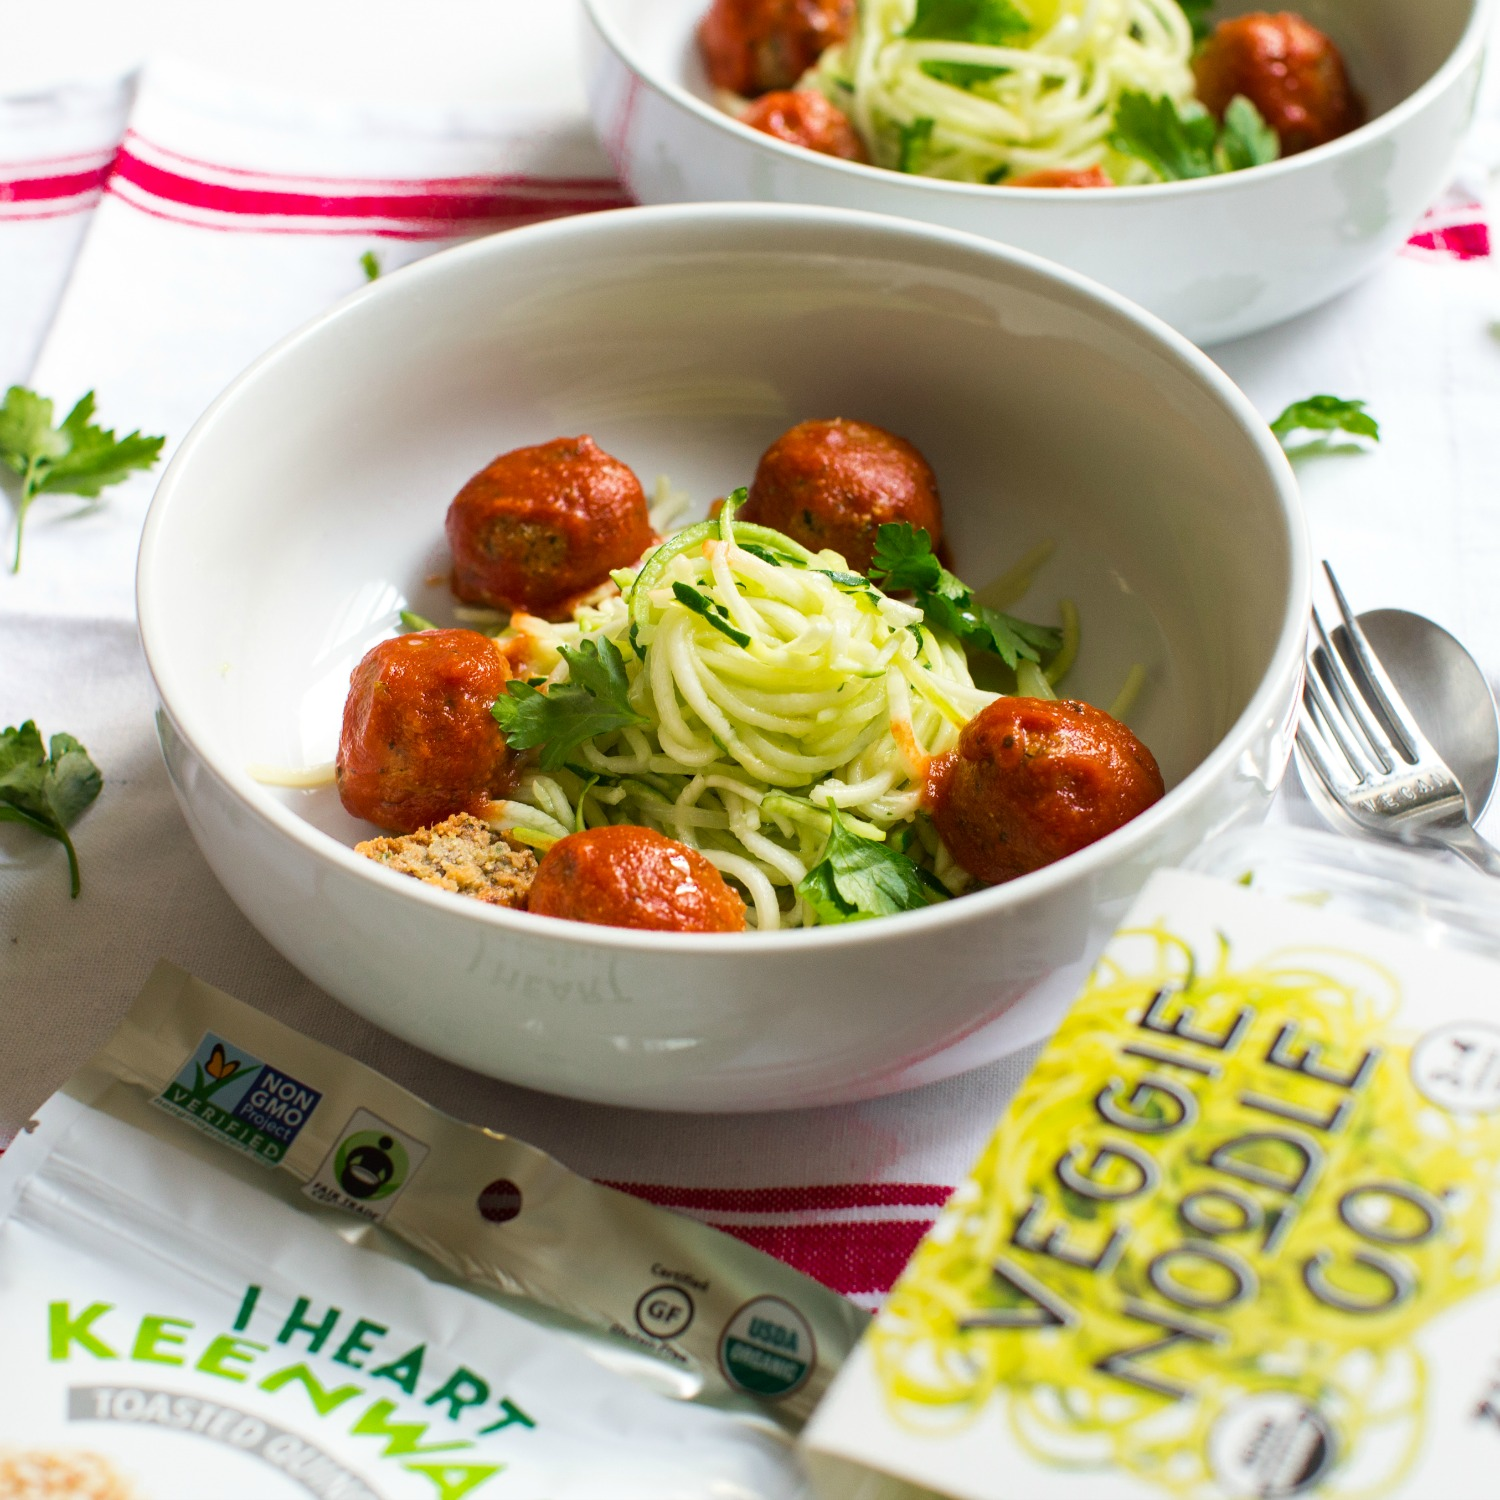 Zucchini Noodles and Vegan Meatballs with Red Sauce (2).jpg